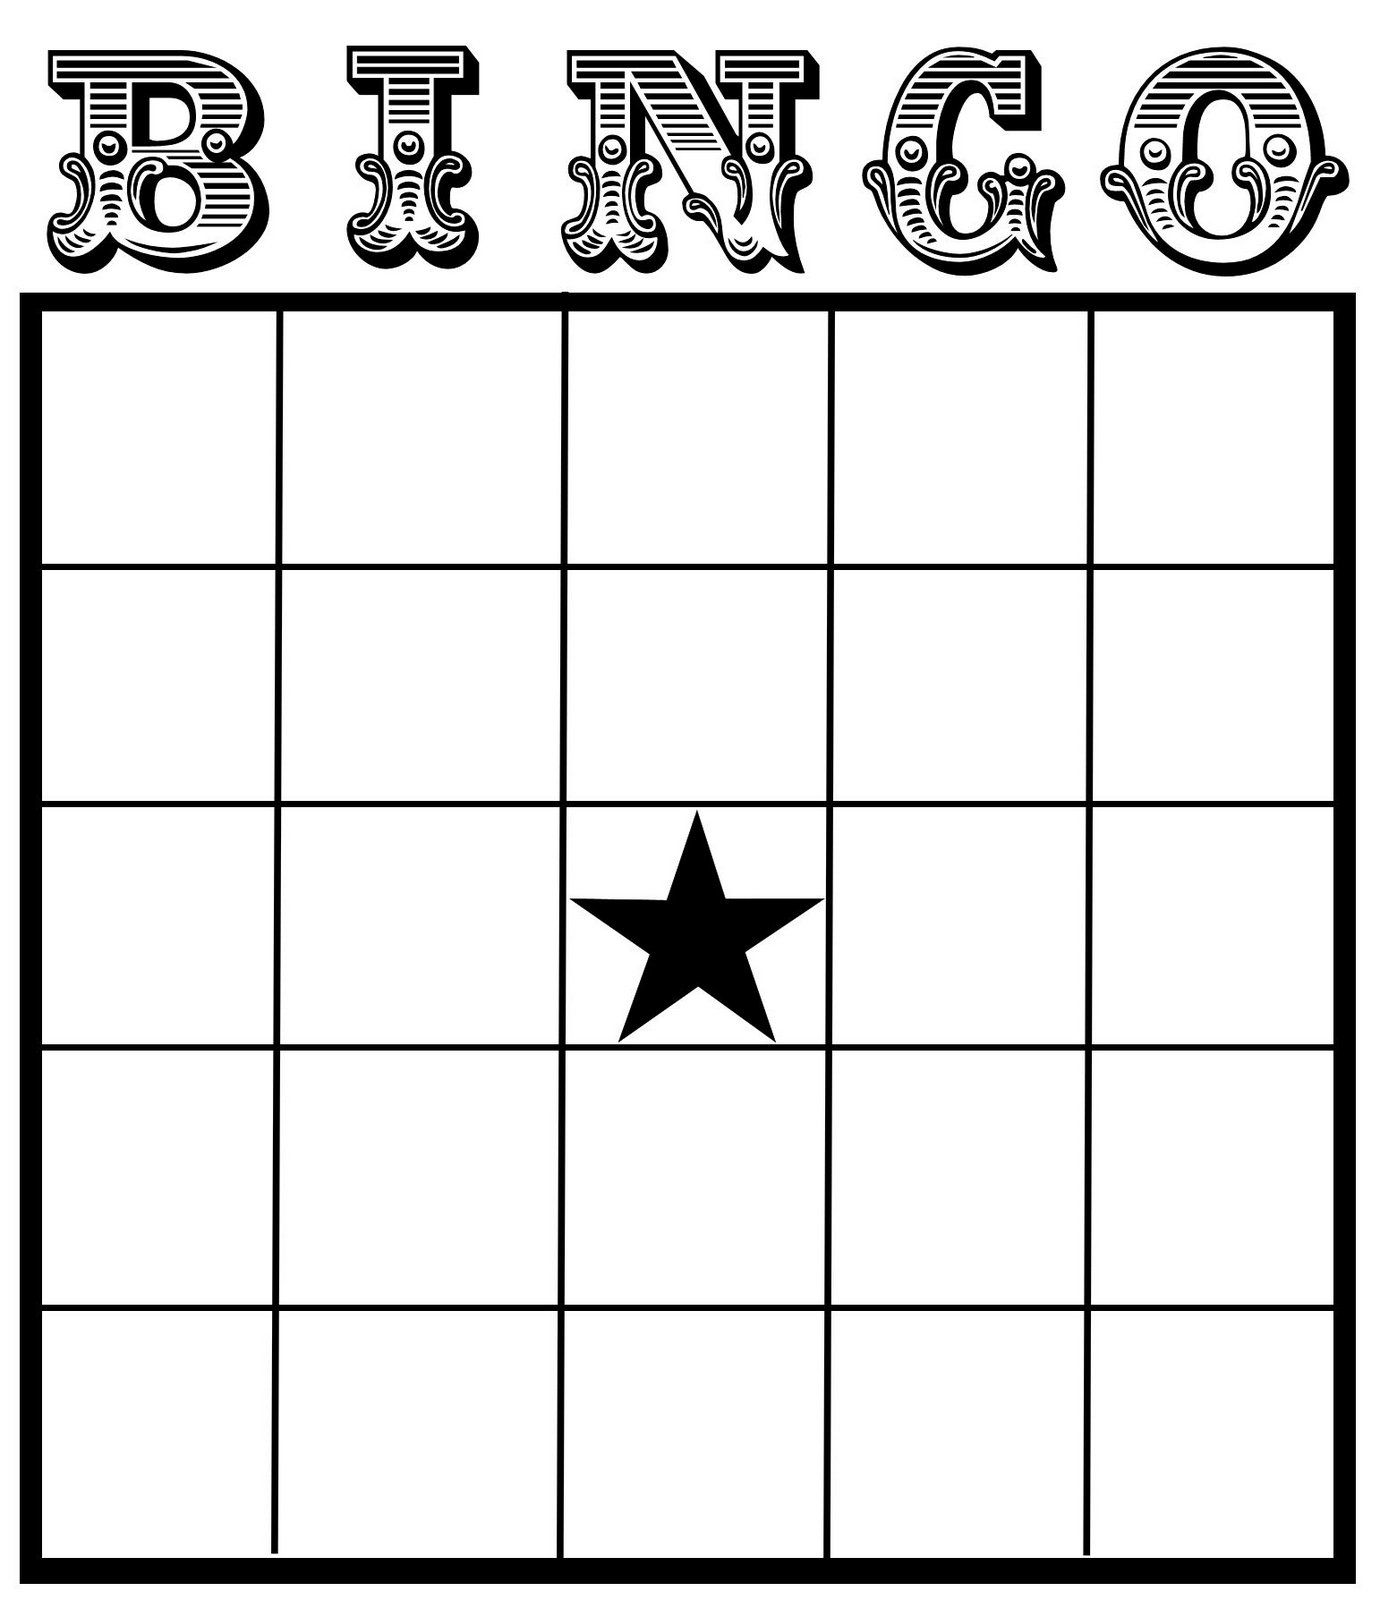 bingo card printables to share  with images